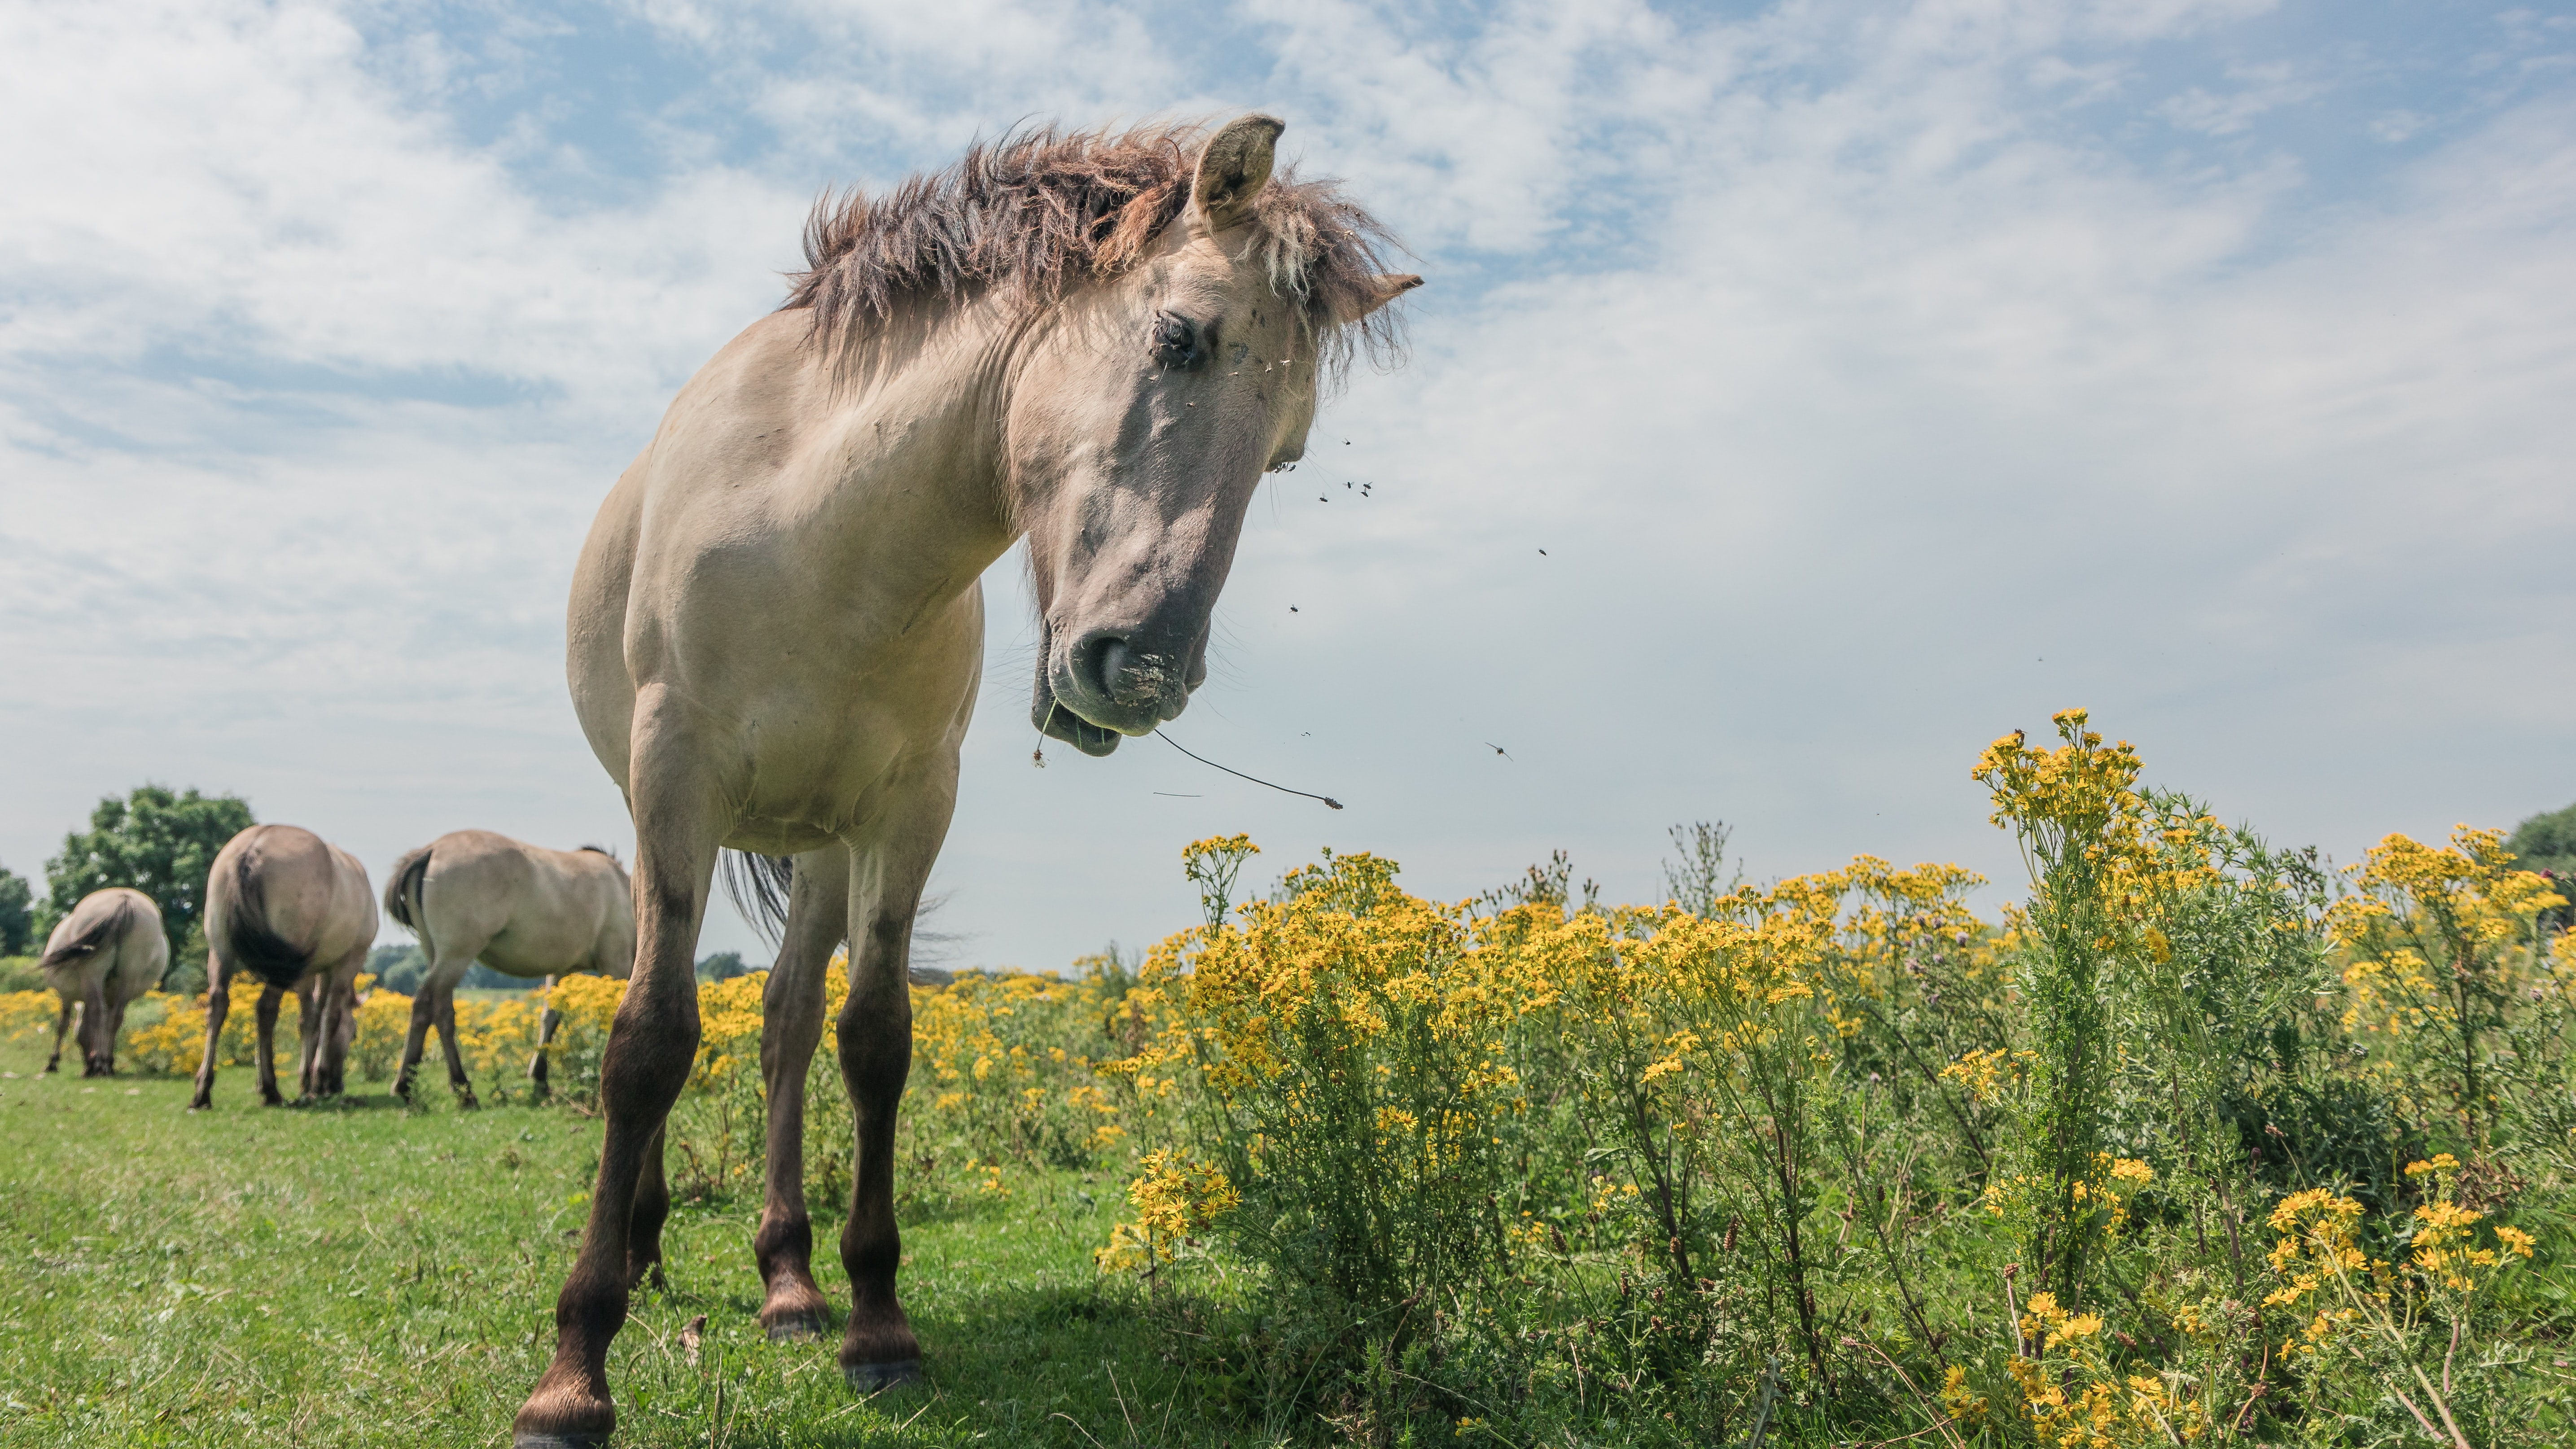 gray horse standing beside yellow flowers